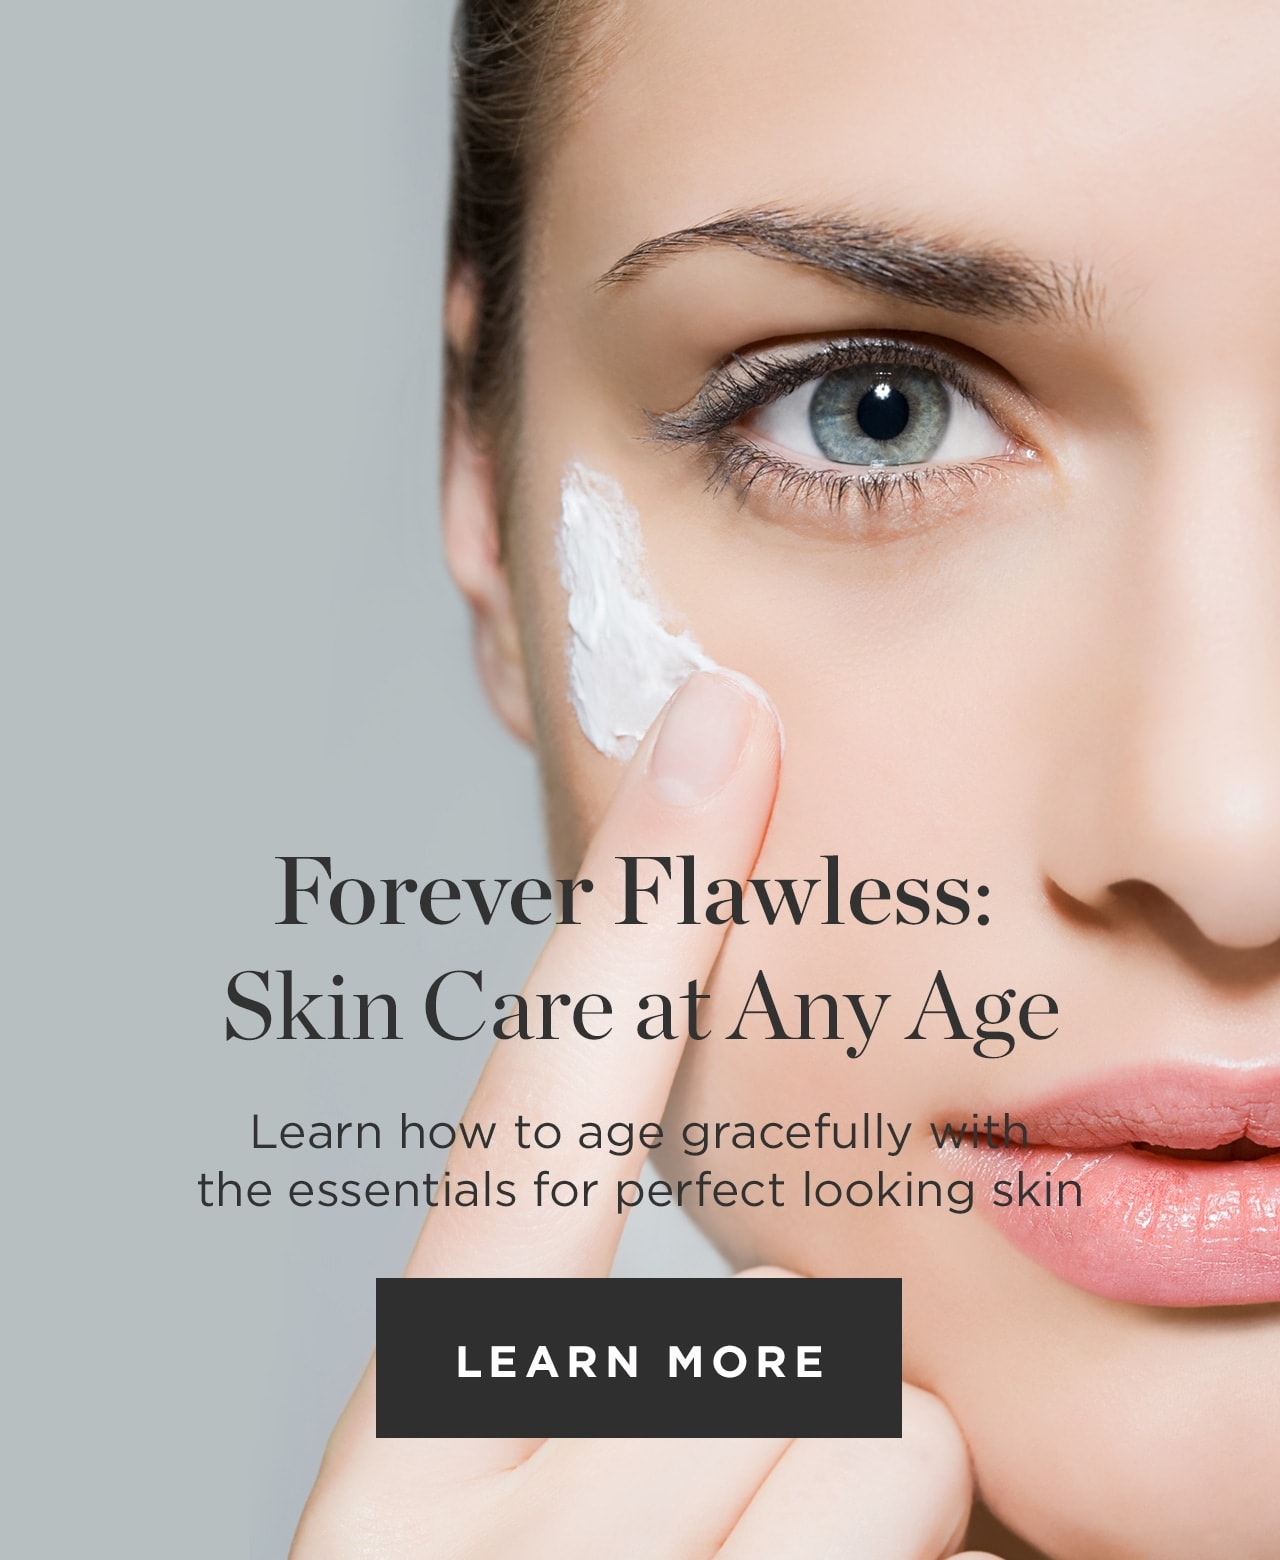 Forever Flawless: Skin Care at Any Age